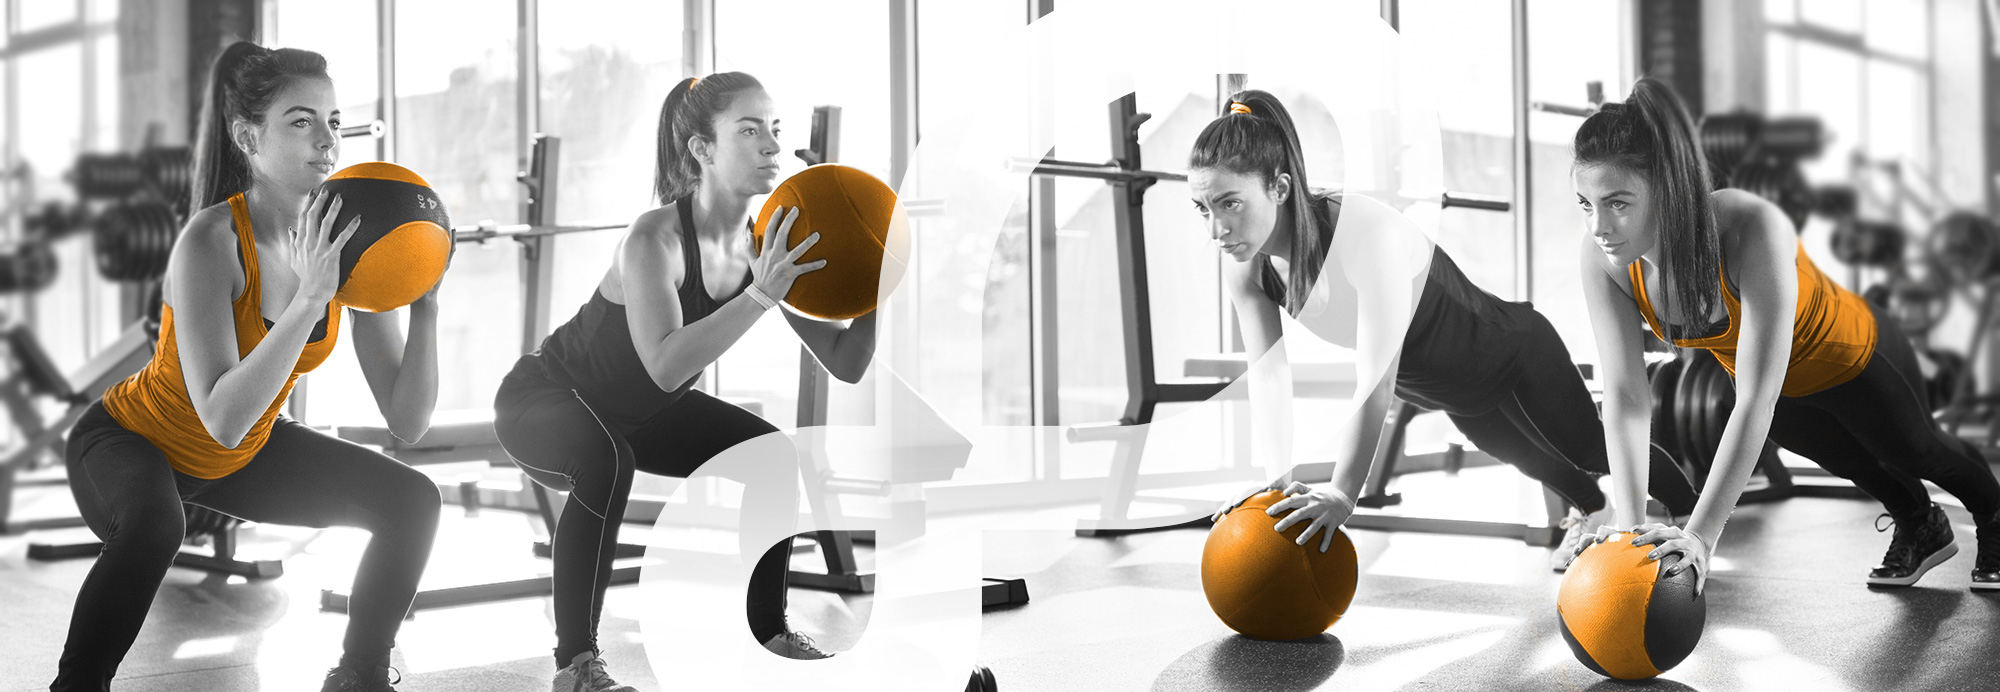 Get stronger with Orange Shoe personal training